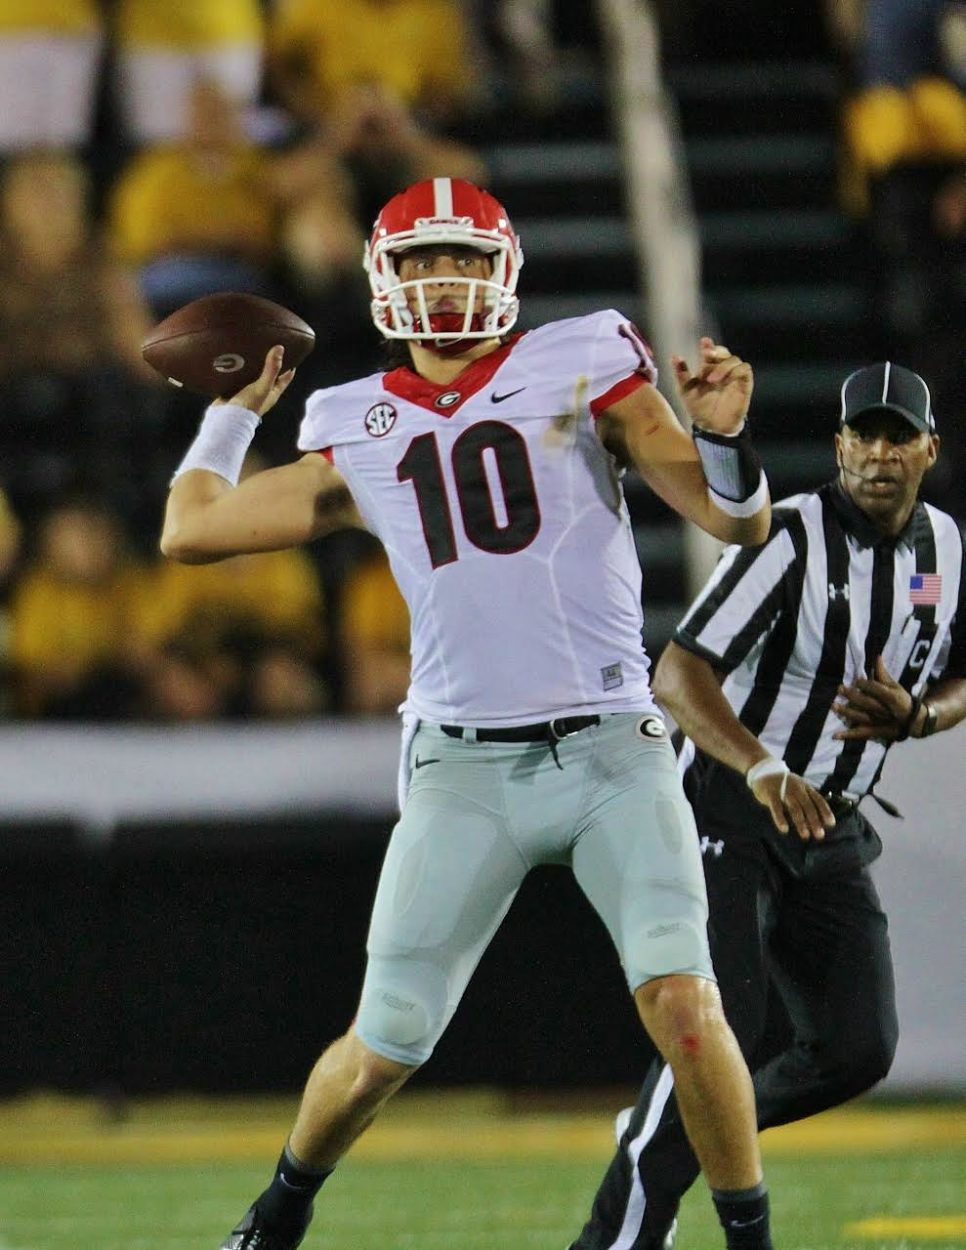 Jacob Eason drops back to complete one of his 55 pass attempts. (photo by Rob Saye)